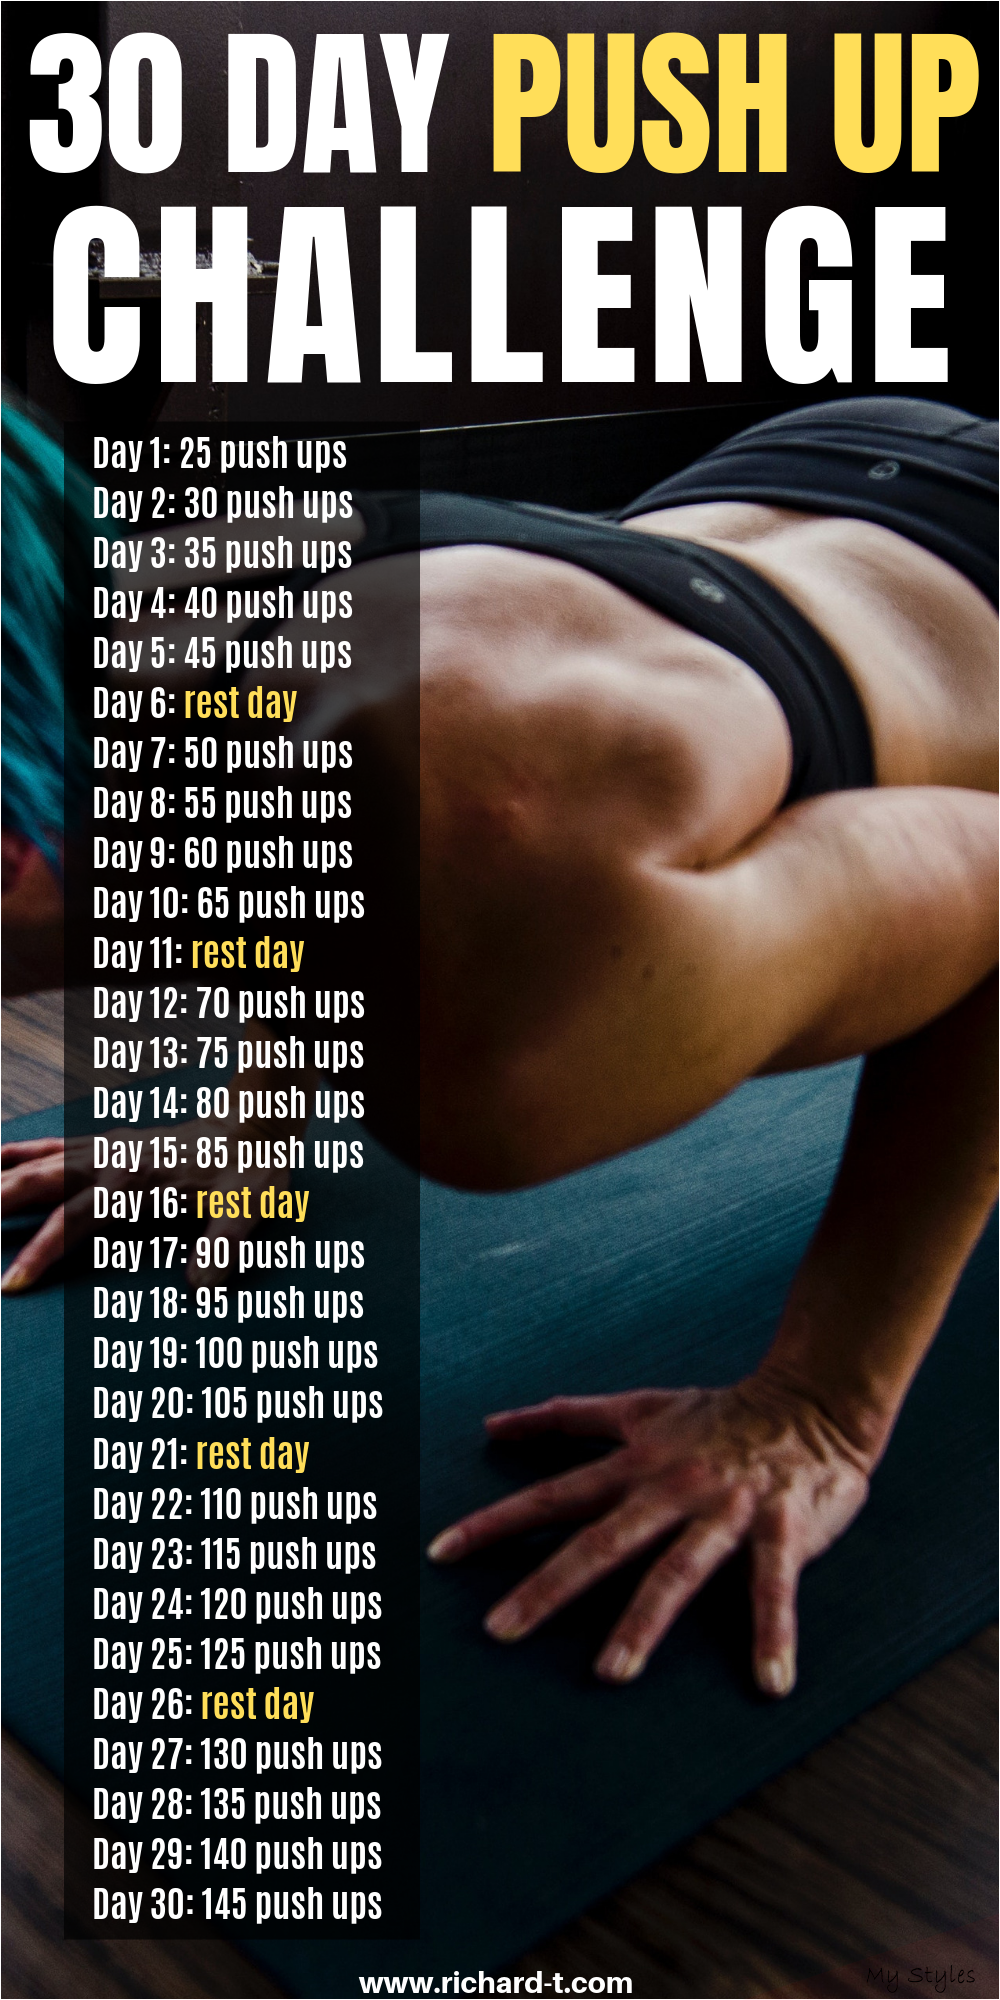 The 30 Day Push Up Challenge For Upper Body Strength #fitness #design